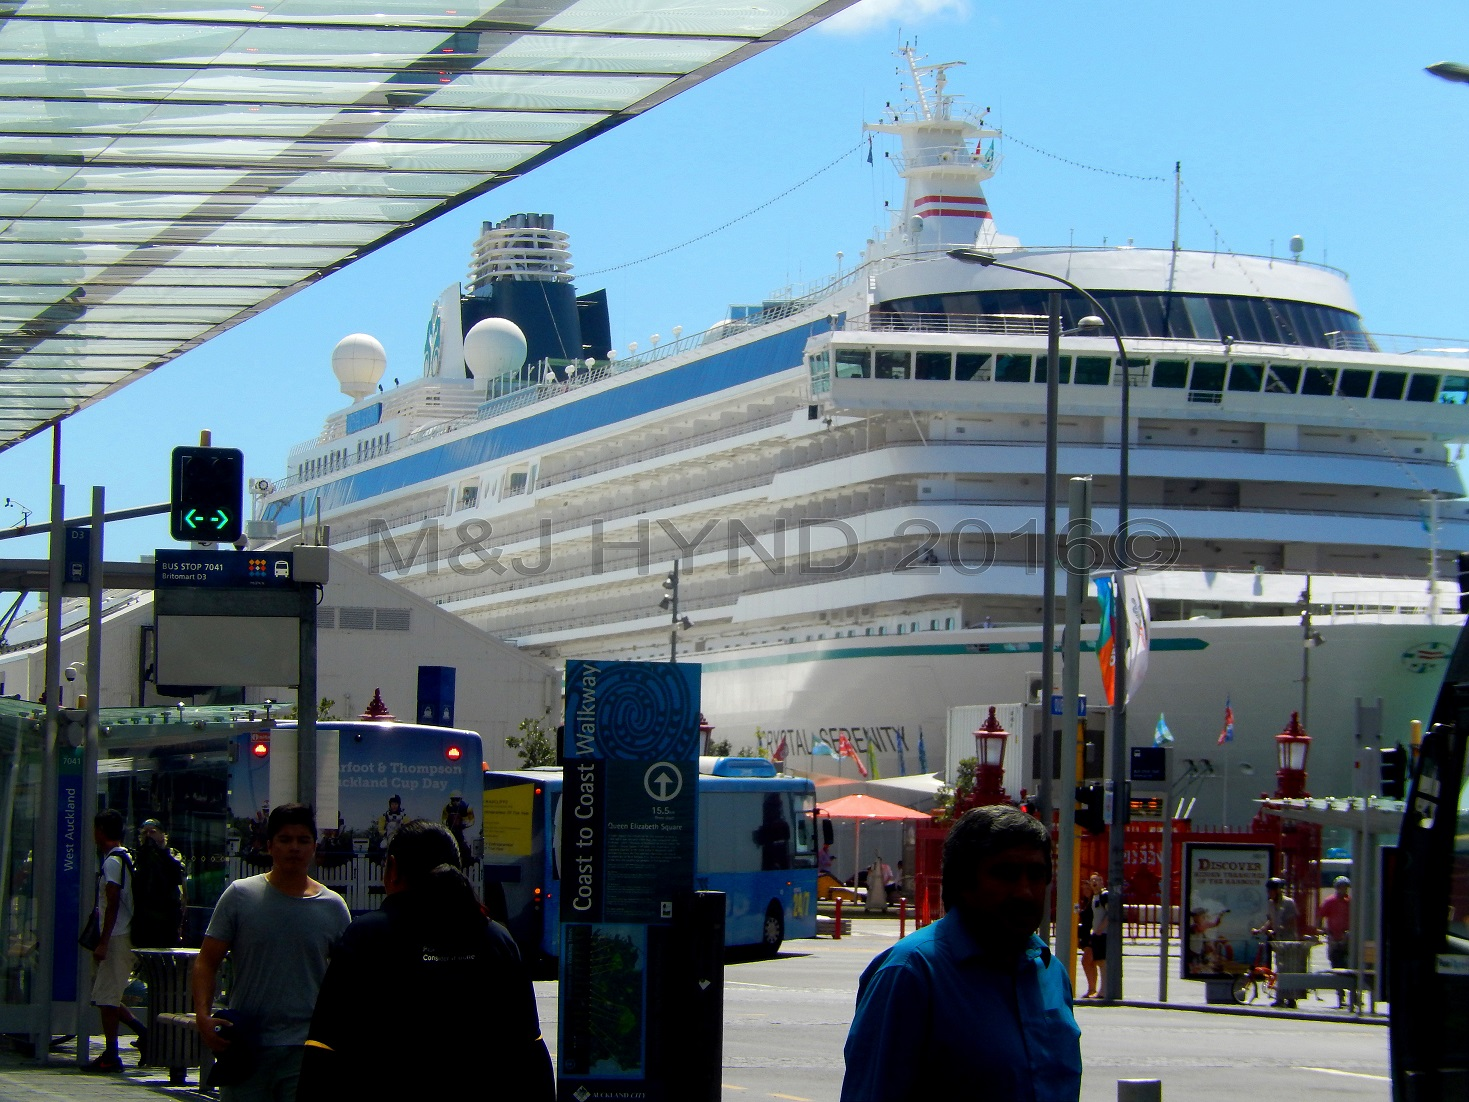 cruise liner docked at Queens Wharf, waterfront, Auckland, NZ